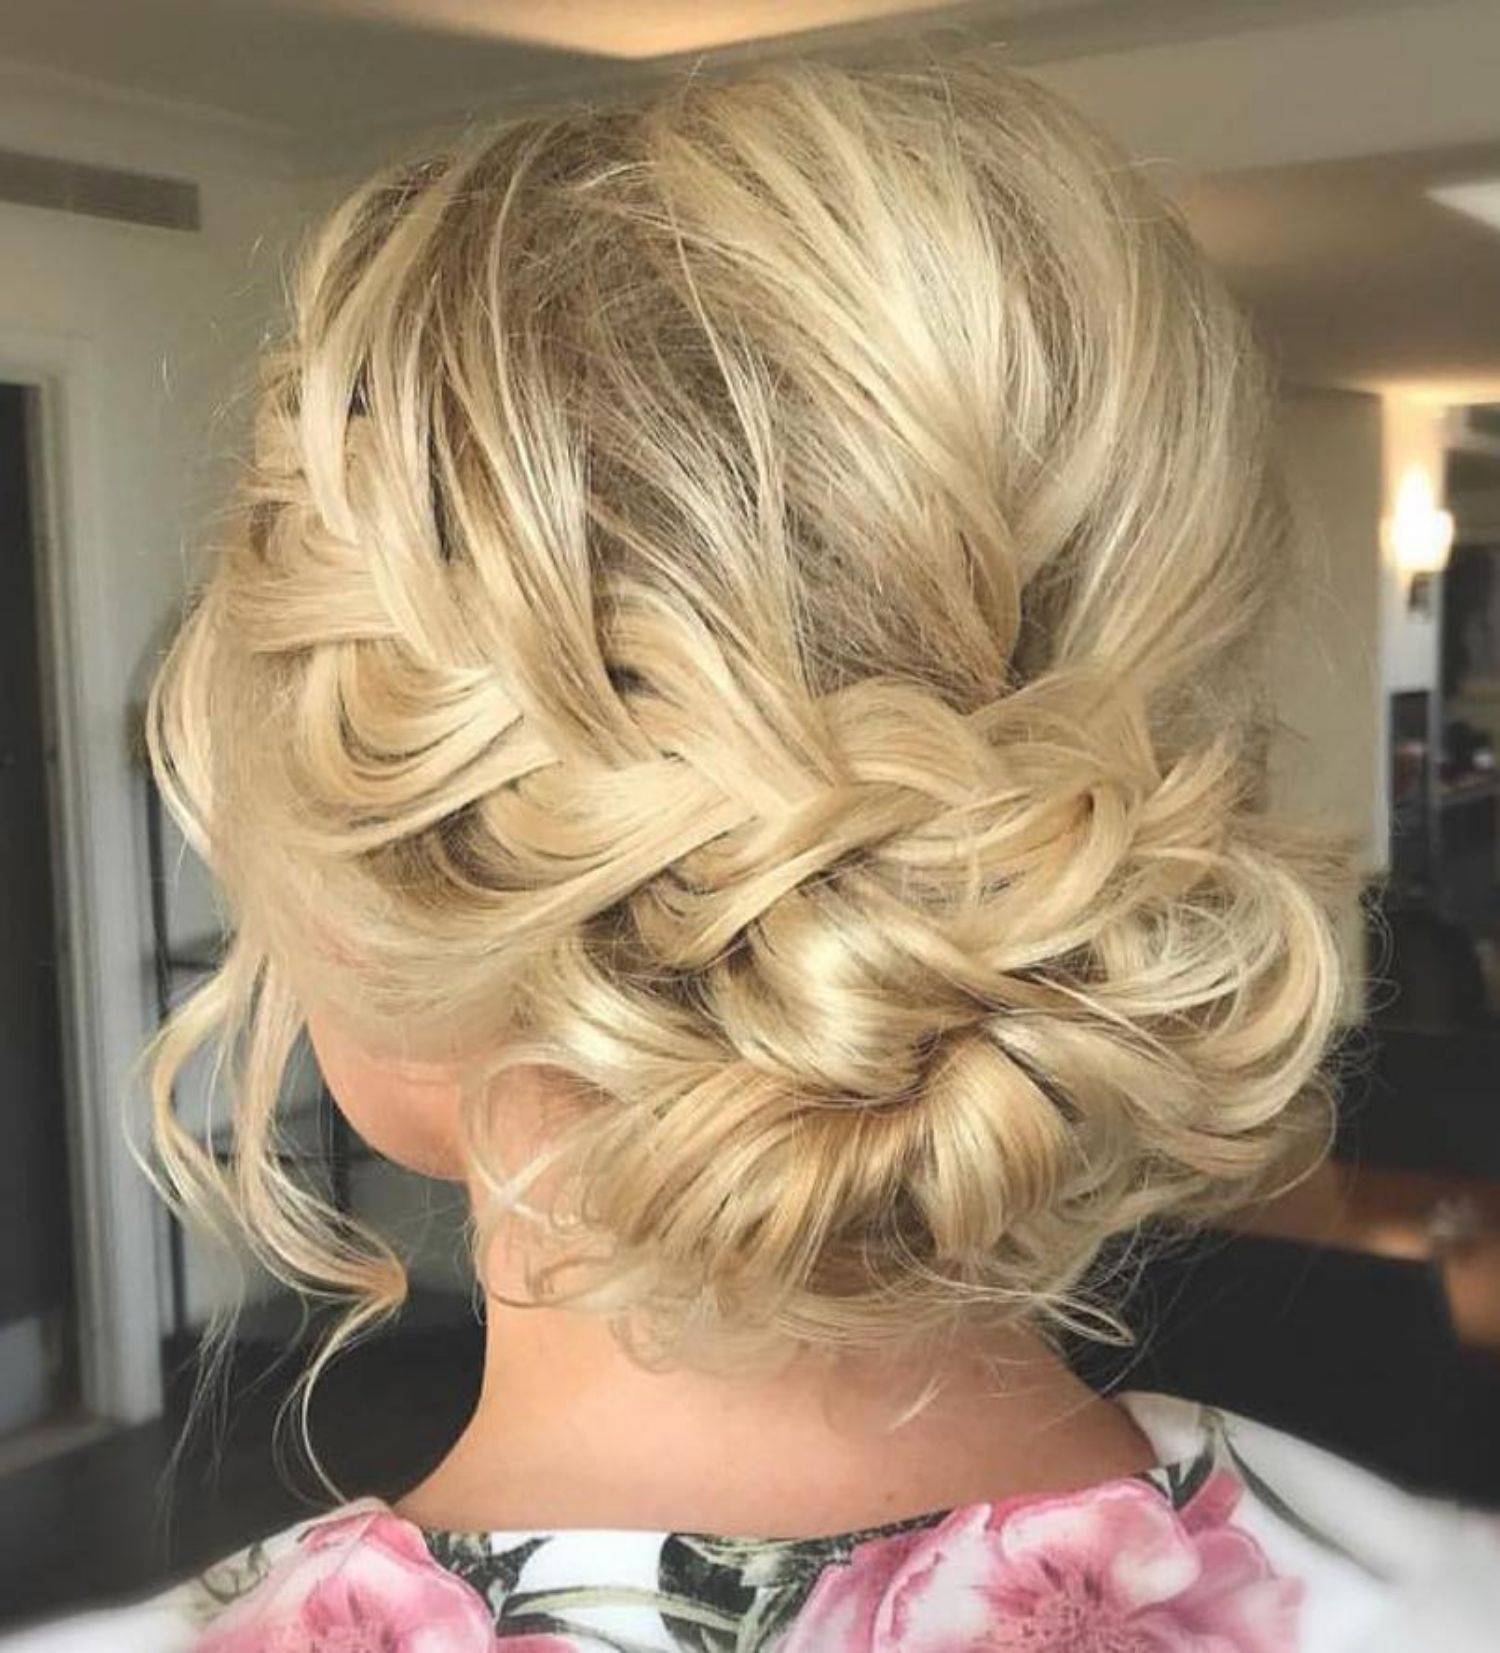 Low Updo With A Braid Medium Length Hair Styles Updos For Medium Length Hair Hair Lengths